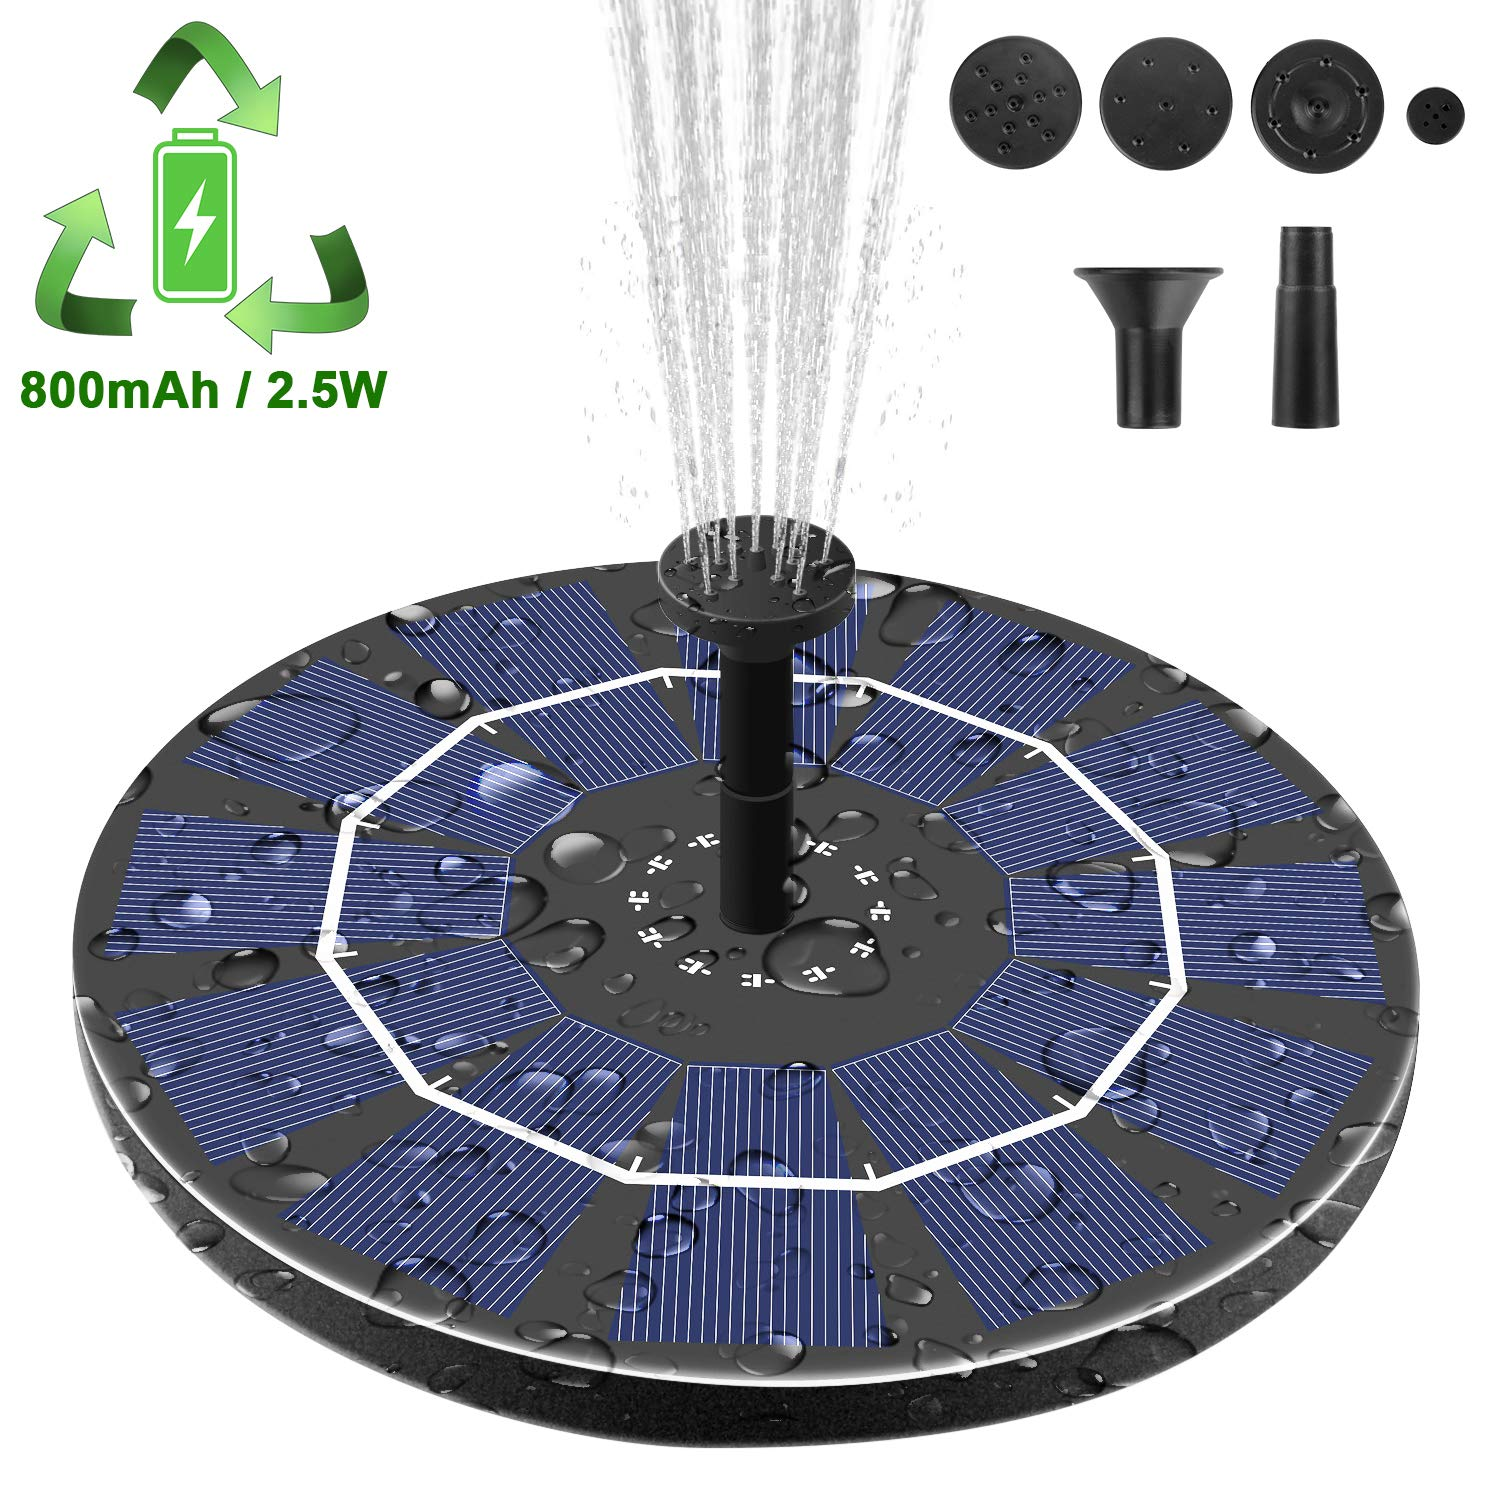 Viajero Latest Upgrade 2.5W Solar Fountain Pump for Bird Bath with 800mAh Battery Backup, Free-Standing Portable Floating Solar Powered Water Fountain Pump for Garden Backyard Pond Pool Outdoor by Viajero